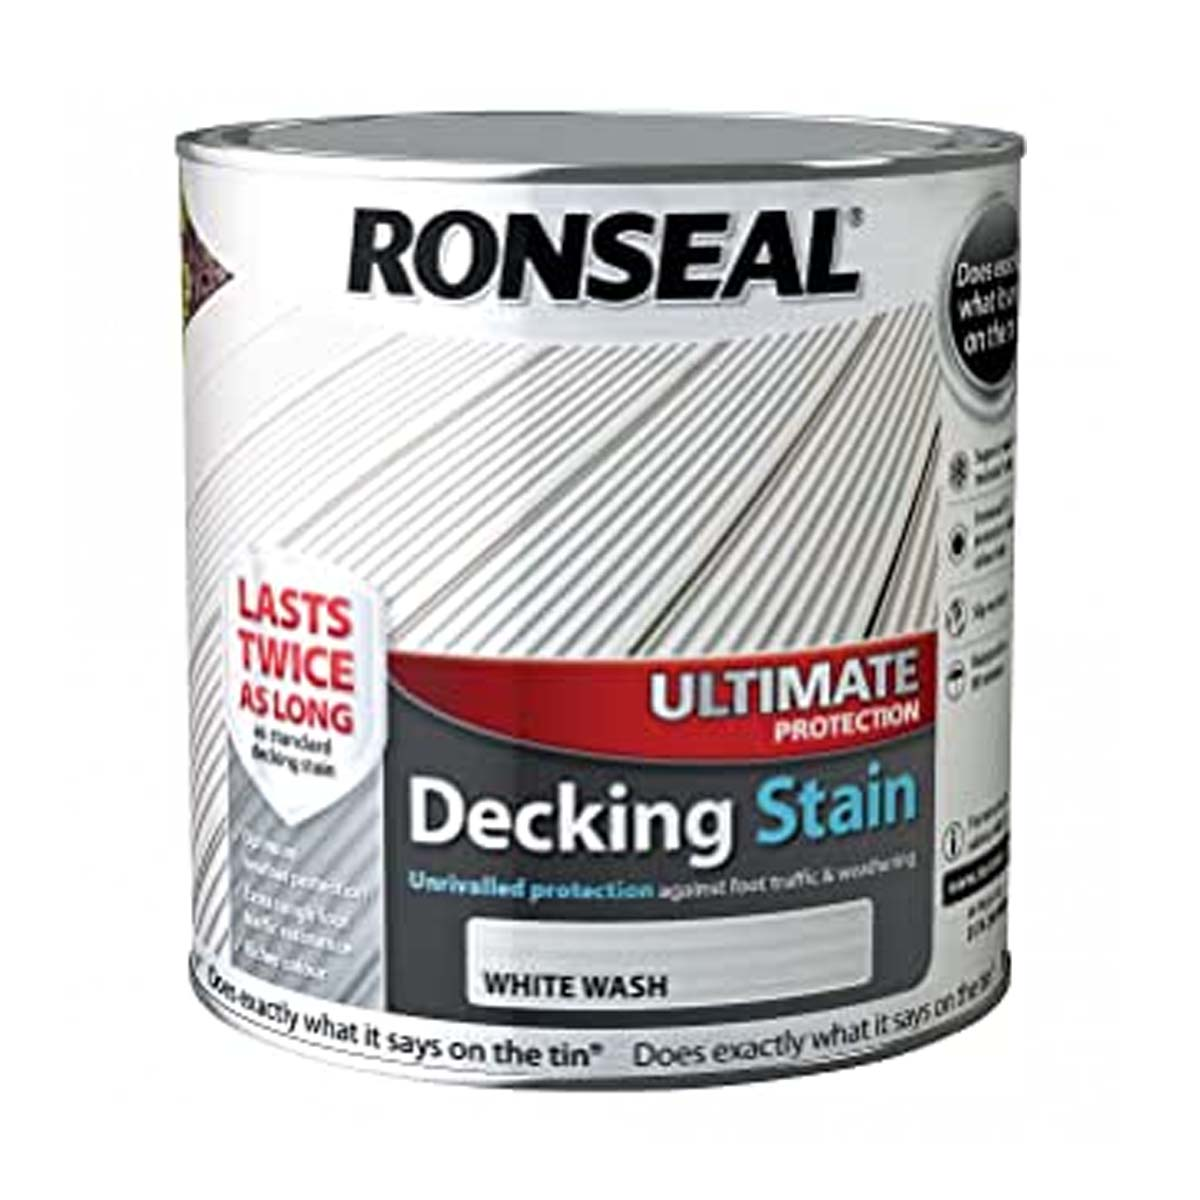 Ronseal Ultimate Protection Decking Stain White Wash 2.5L (36910)